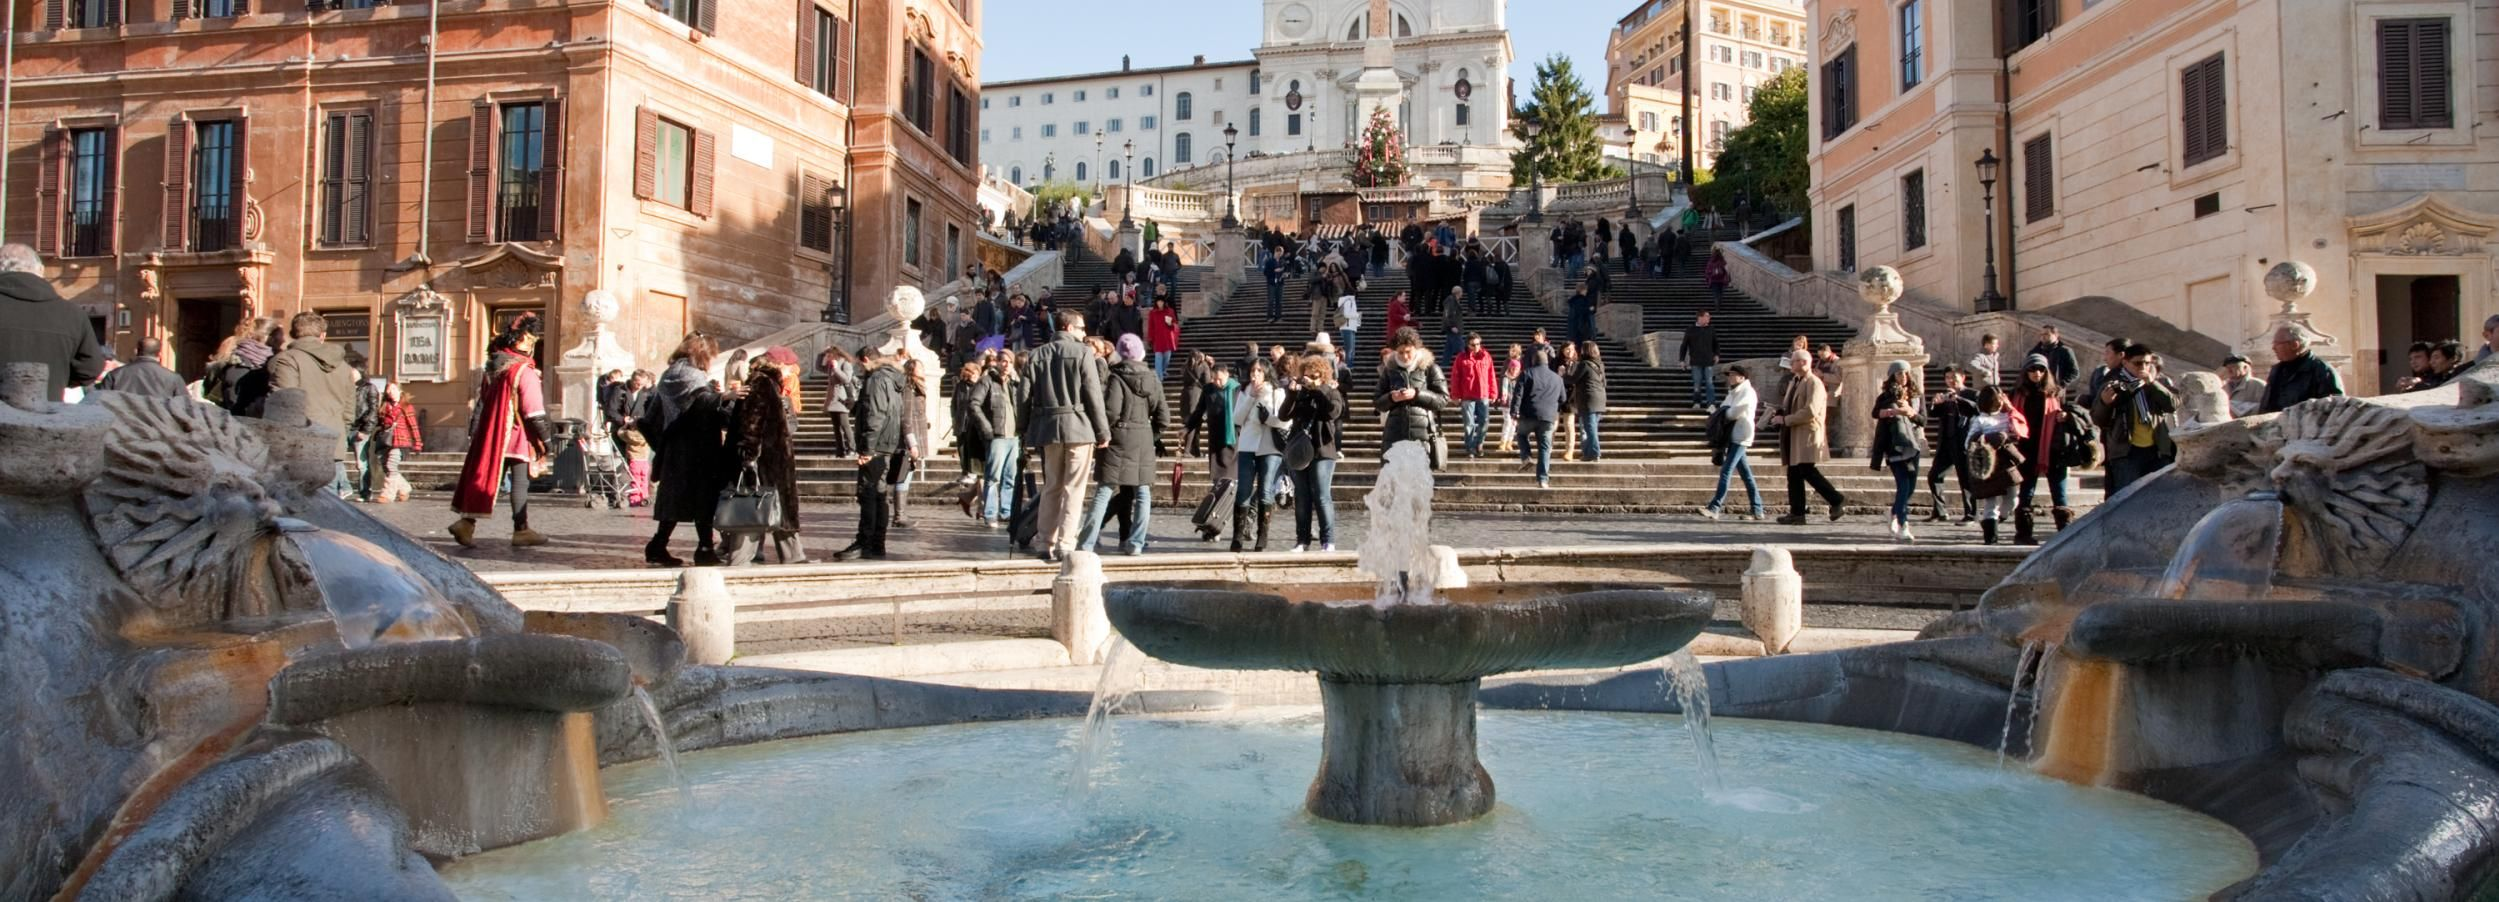 Rome: Fountains and Squares Guided Walking Tour